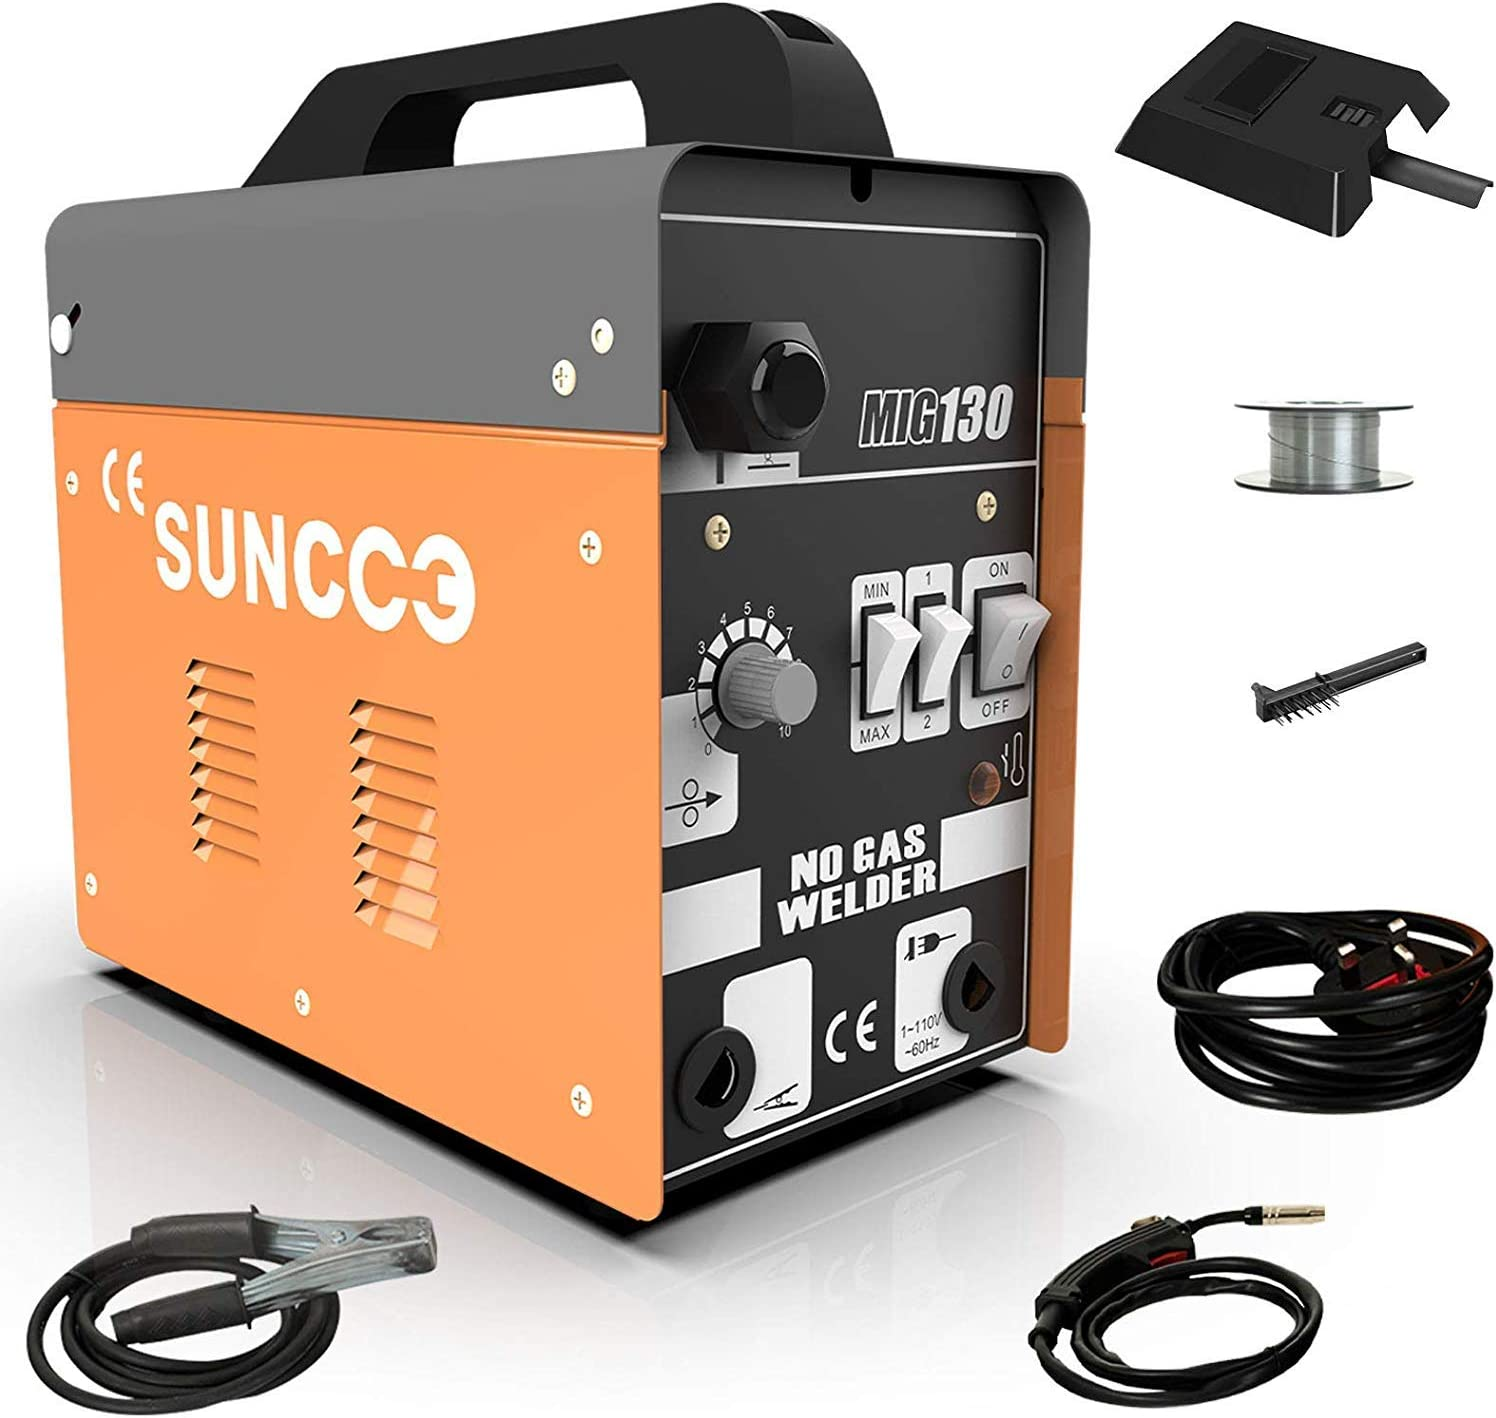 #1 SUNCOO 130 MIG Welder Flux Core Wire Automatic Feed Welding Machine